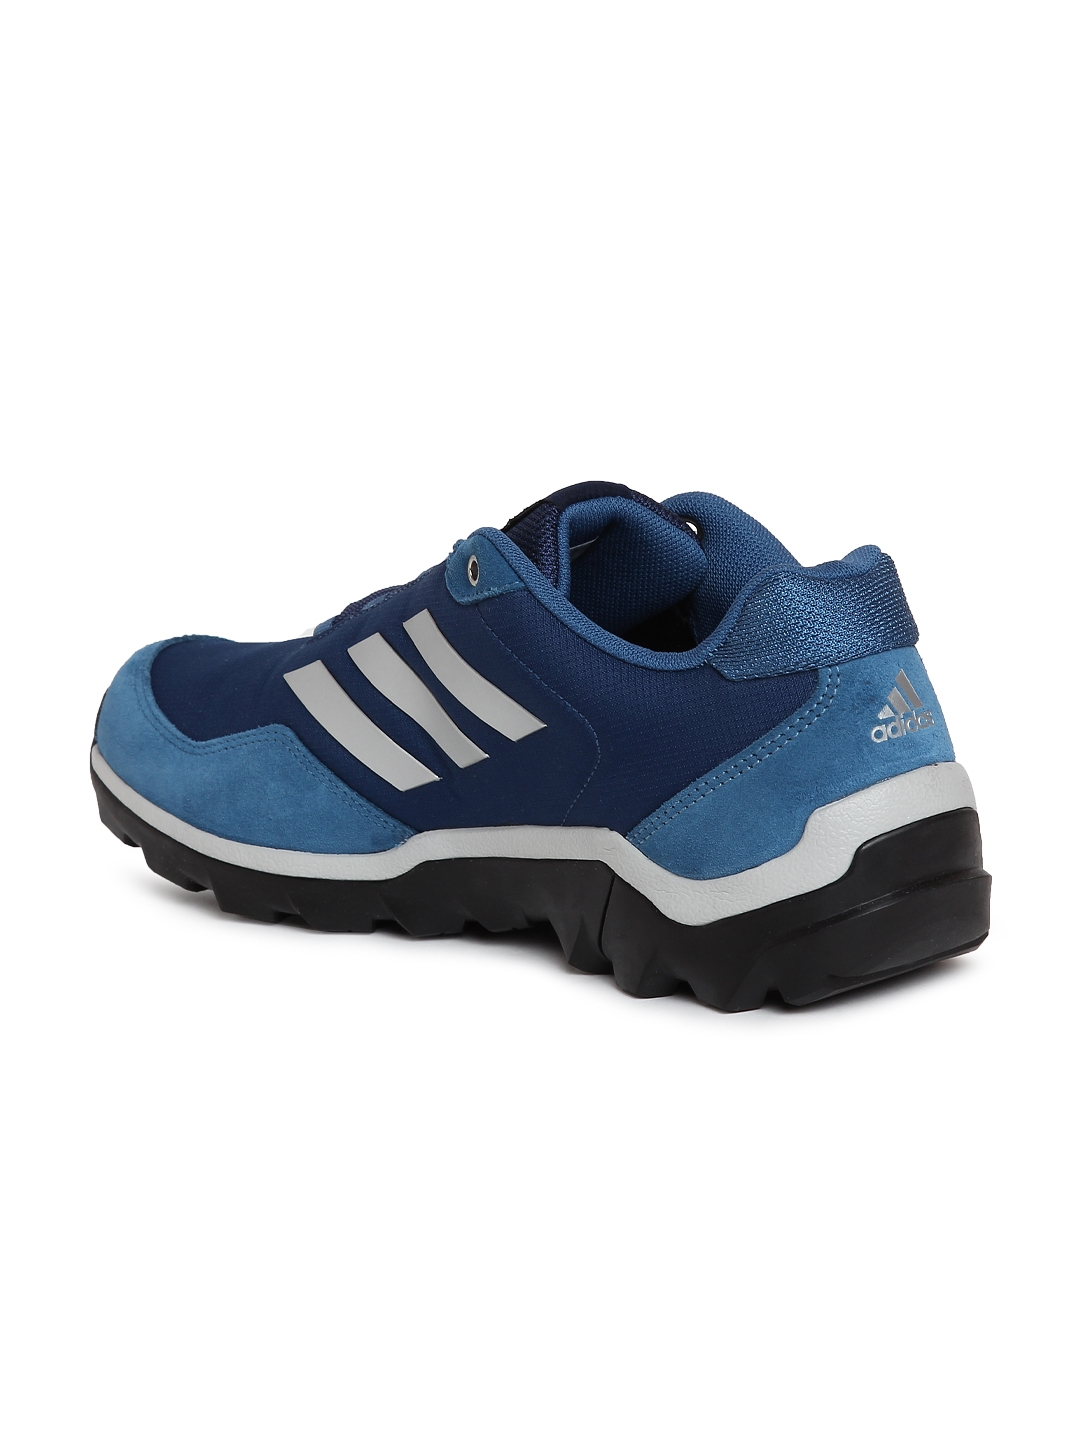 76ca4c0d21d Buy ADIDAS Men Blue Cape Rock IND Outdoor Shoes - Sports Shoes for ...